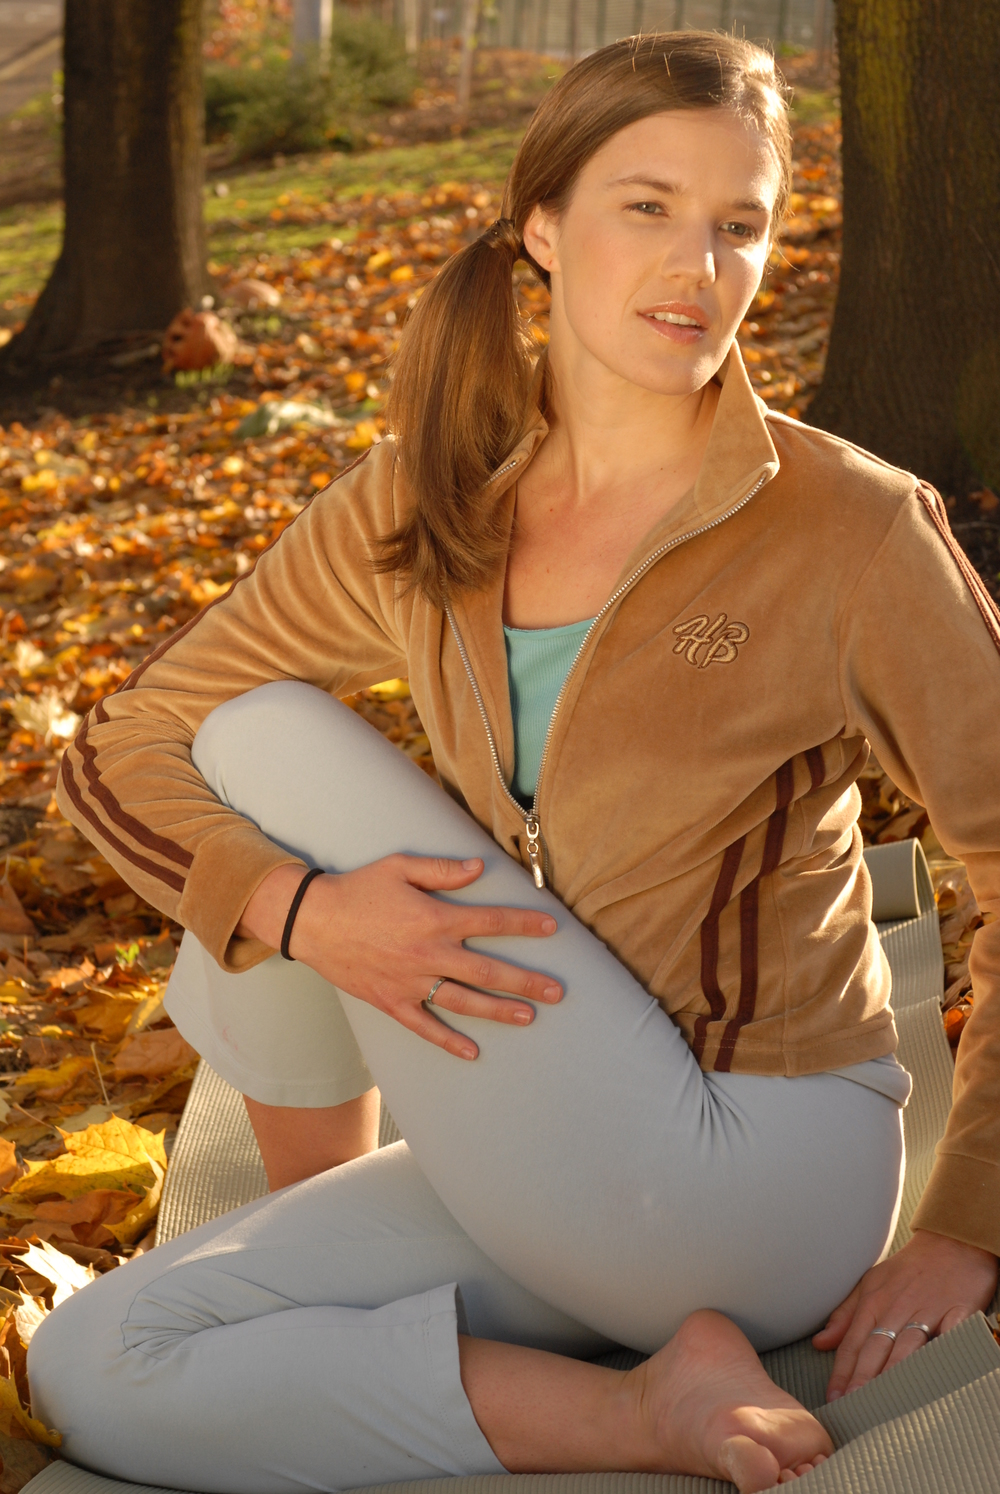 Yes, I always practice yoga on a steep hillside, wearing a velour sweater and side pony tail.